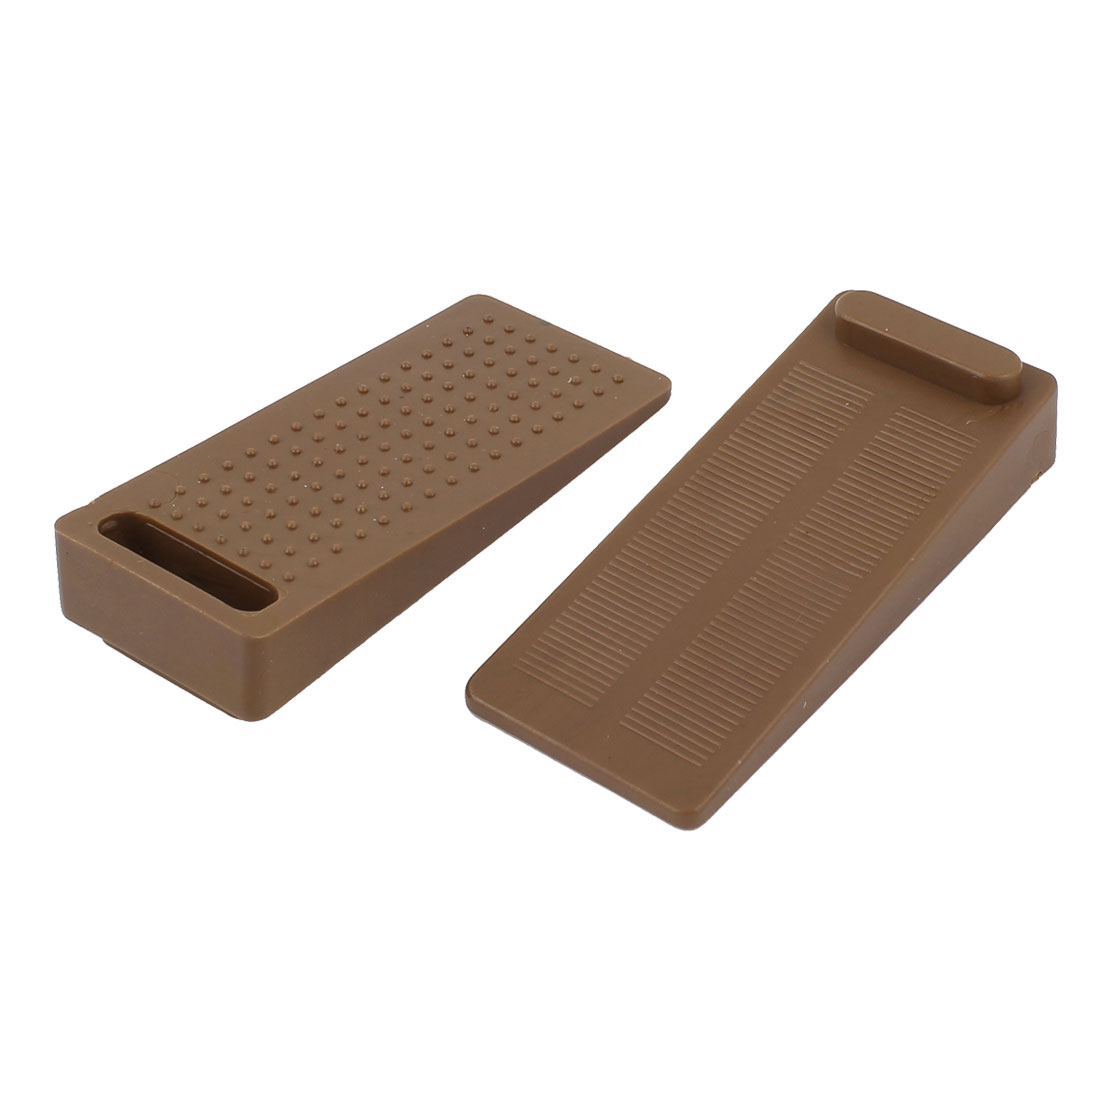 2pcs Coffee Color Rubber Nonslip Door Wedge Stop Stoppers for Home